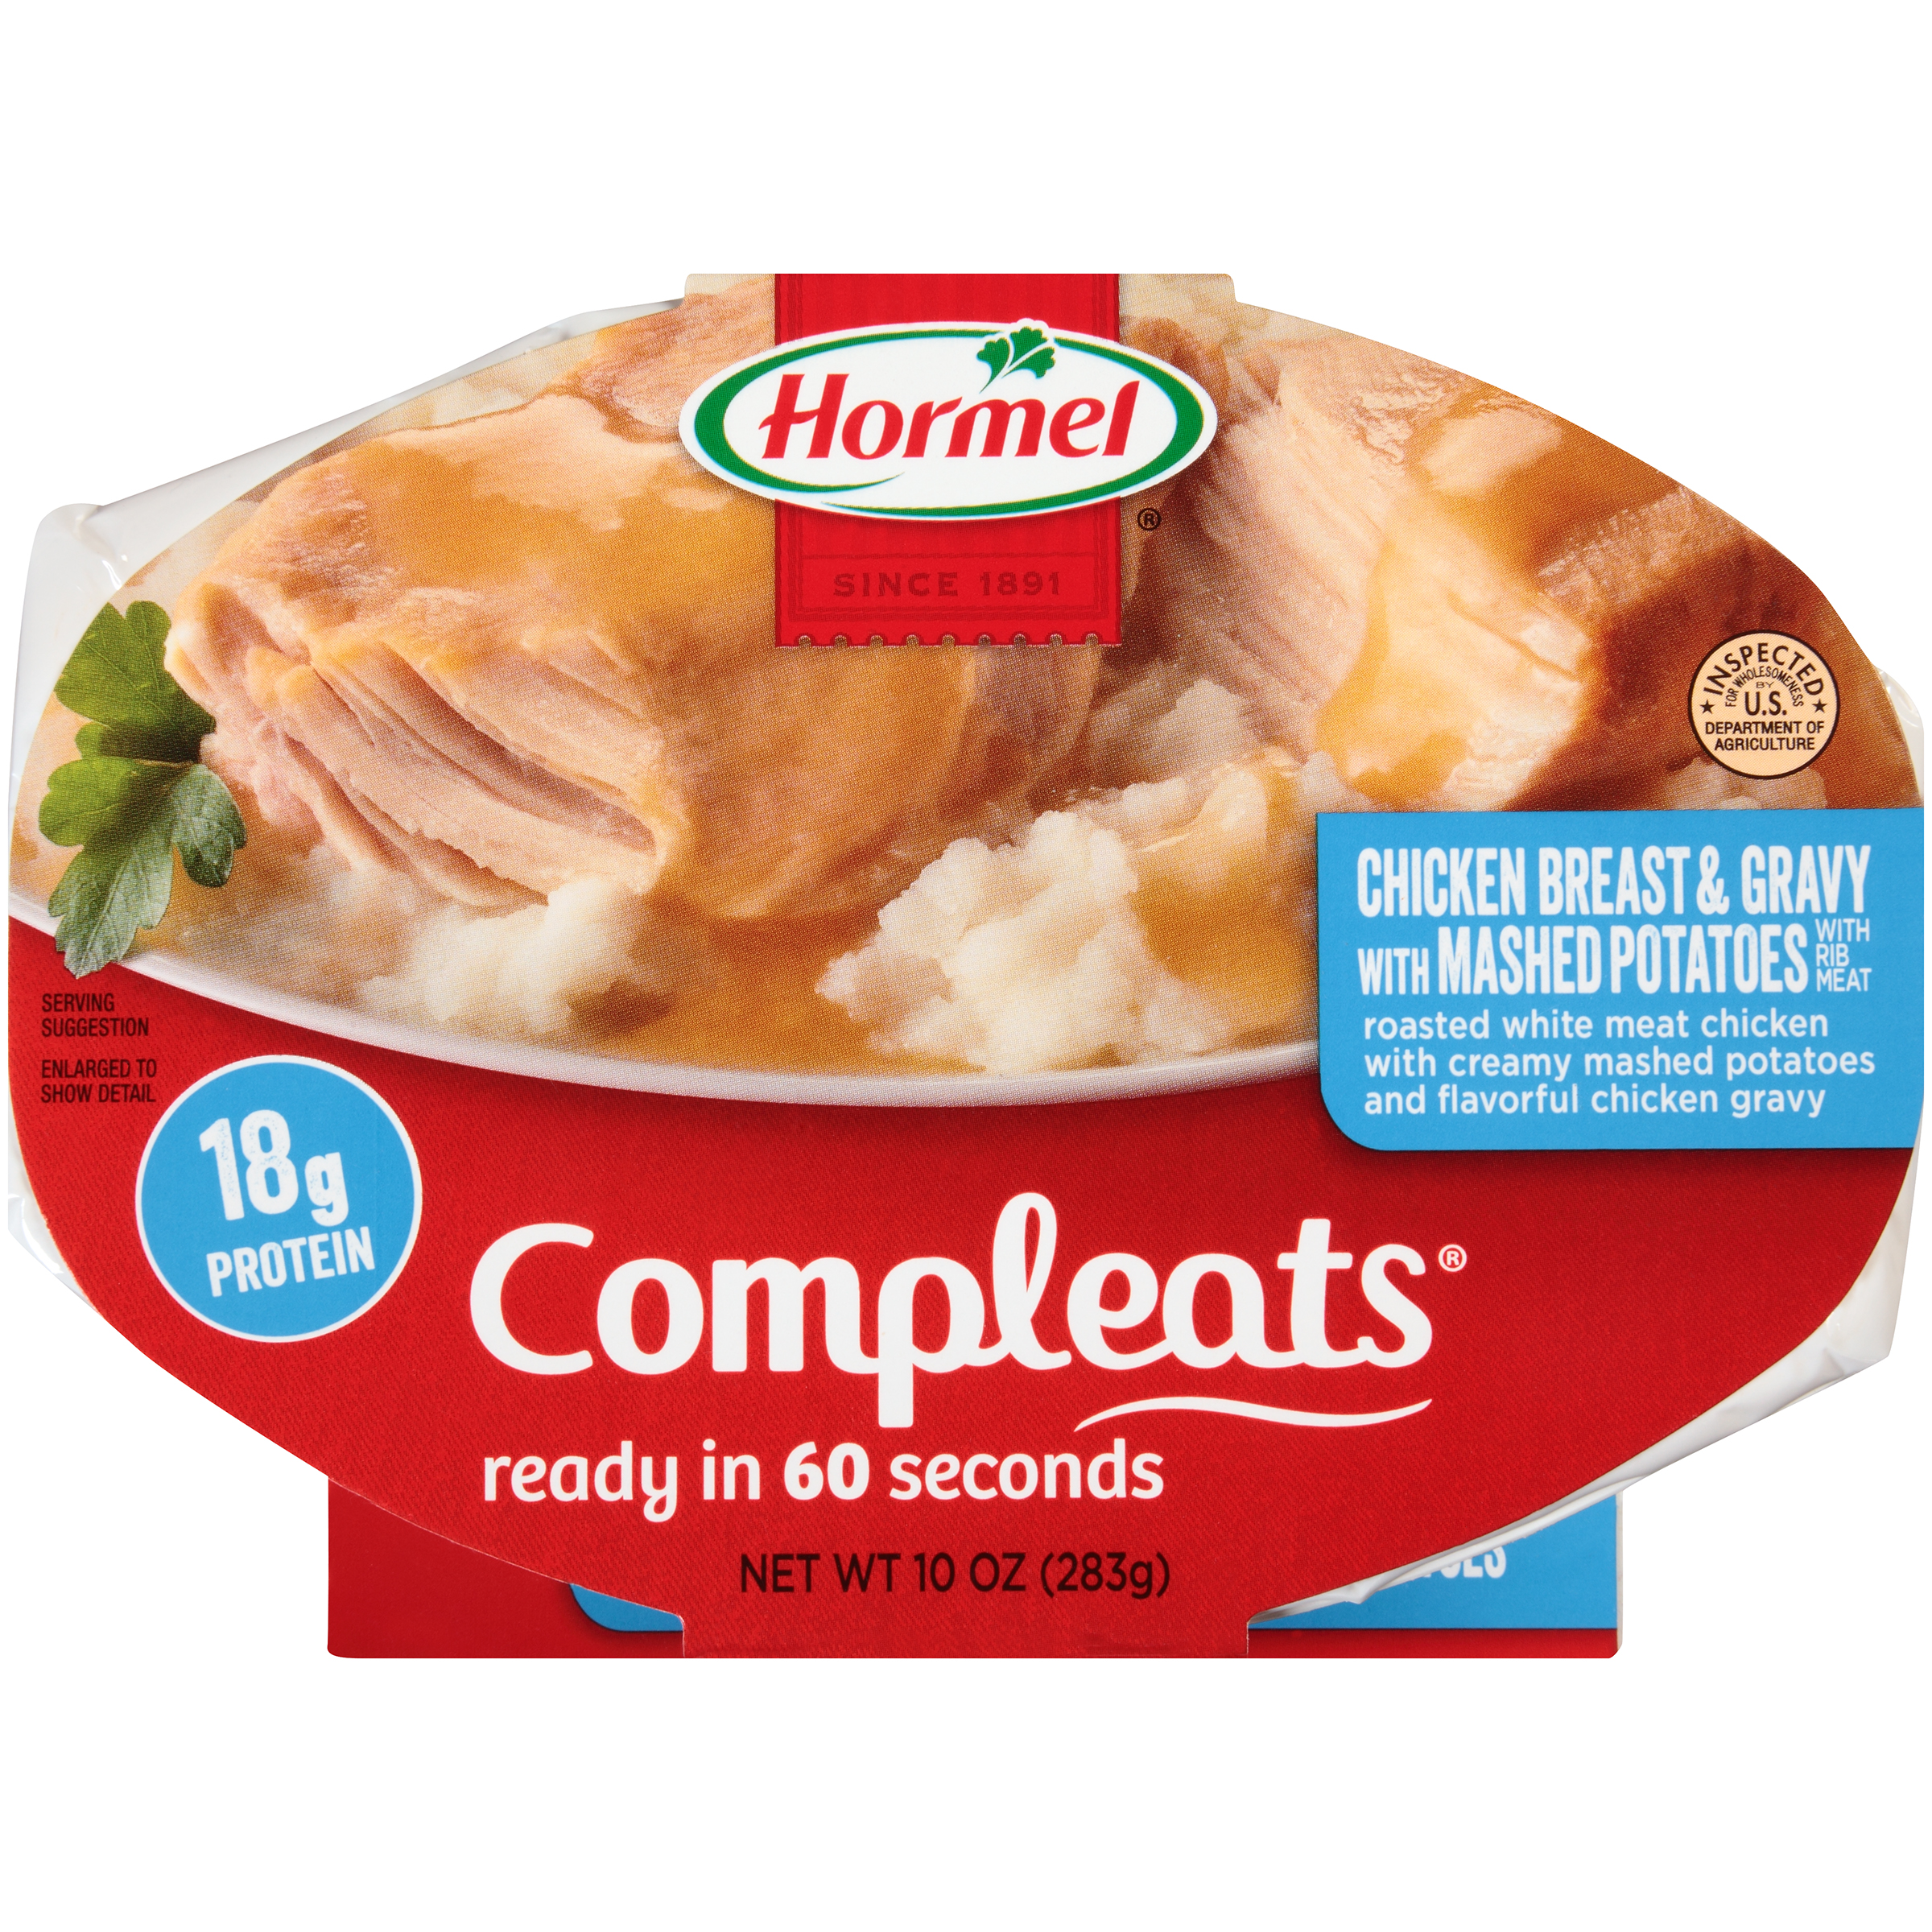 Hormel Chicken Breast & Gravy with Mashed Potatoes Compleats 10 oz Sleeve